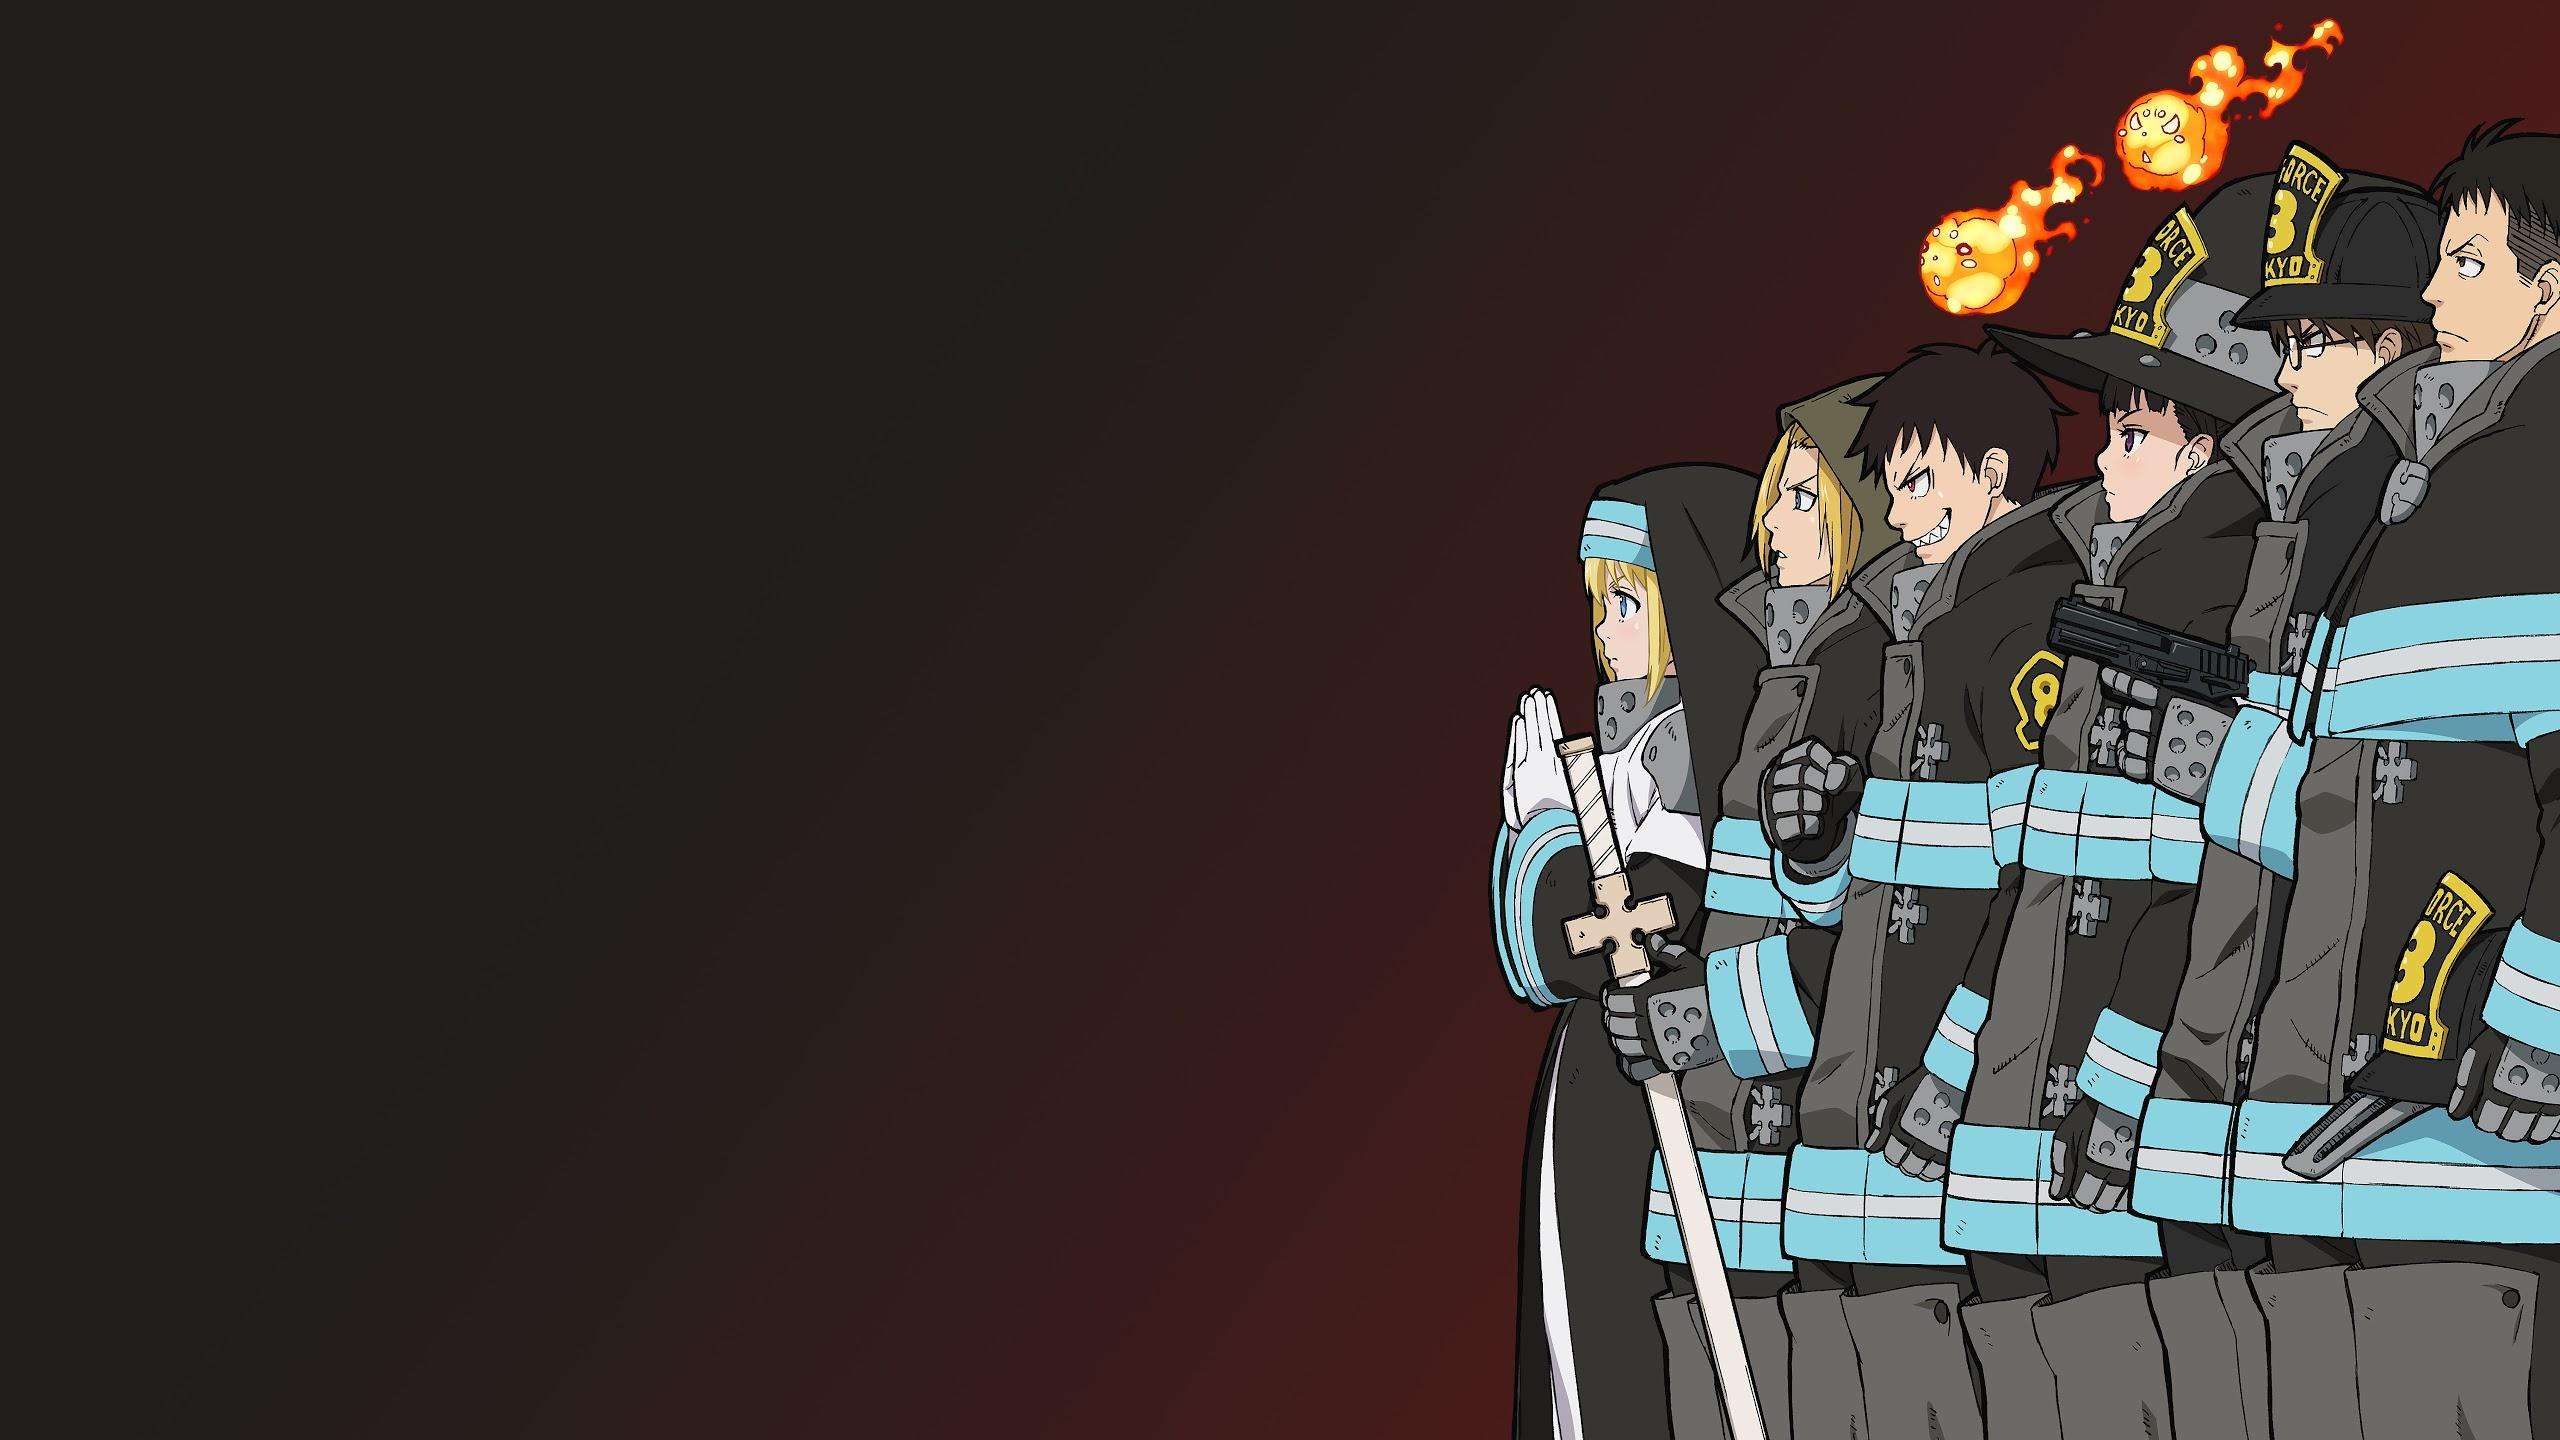 Fire Force Desktop Wallpapers Wallpaper Cave We paid a lot of attention to the details to make your browsing process more comfortable. fire force desktop wallpapers